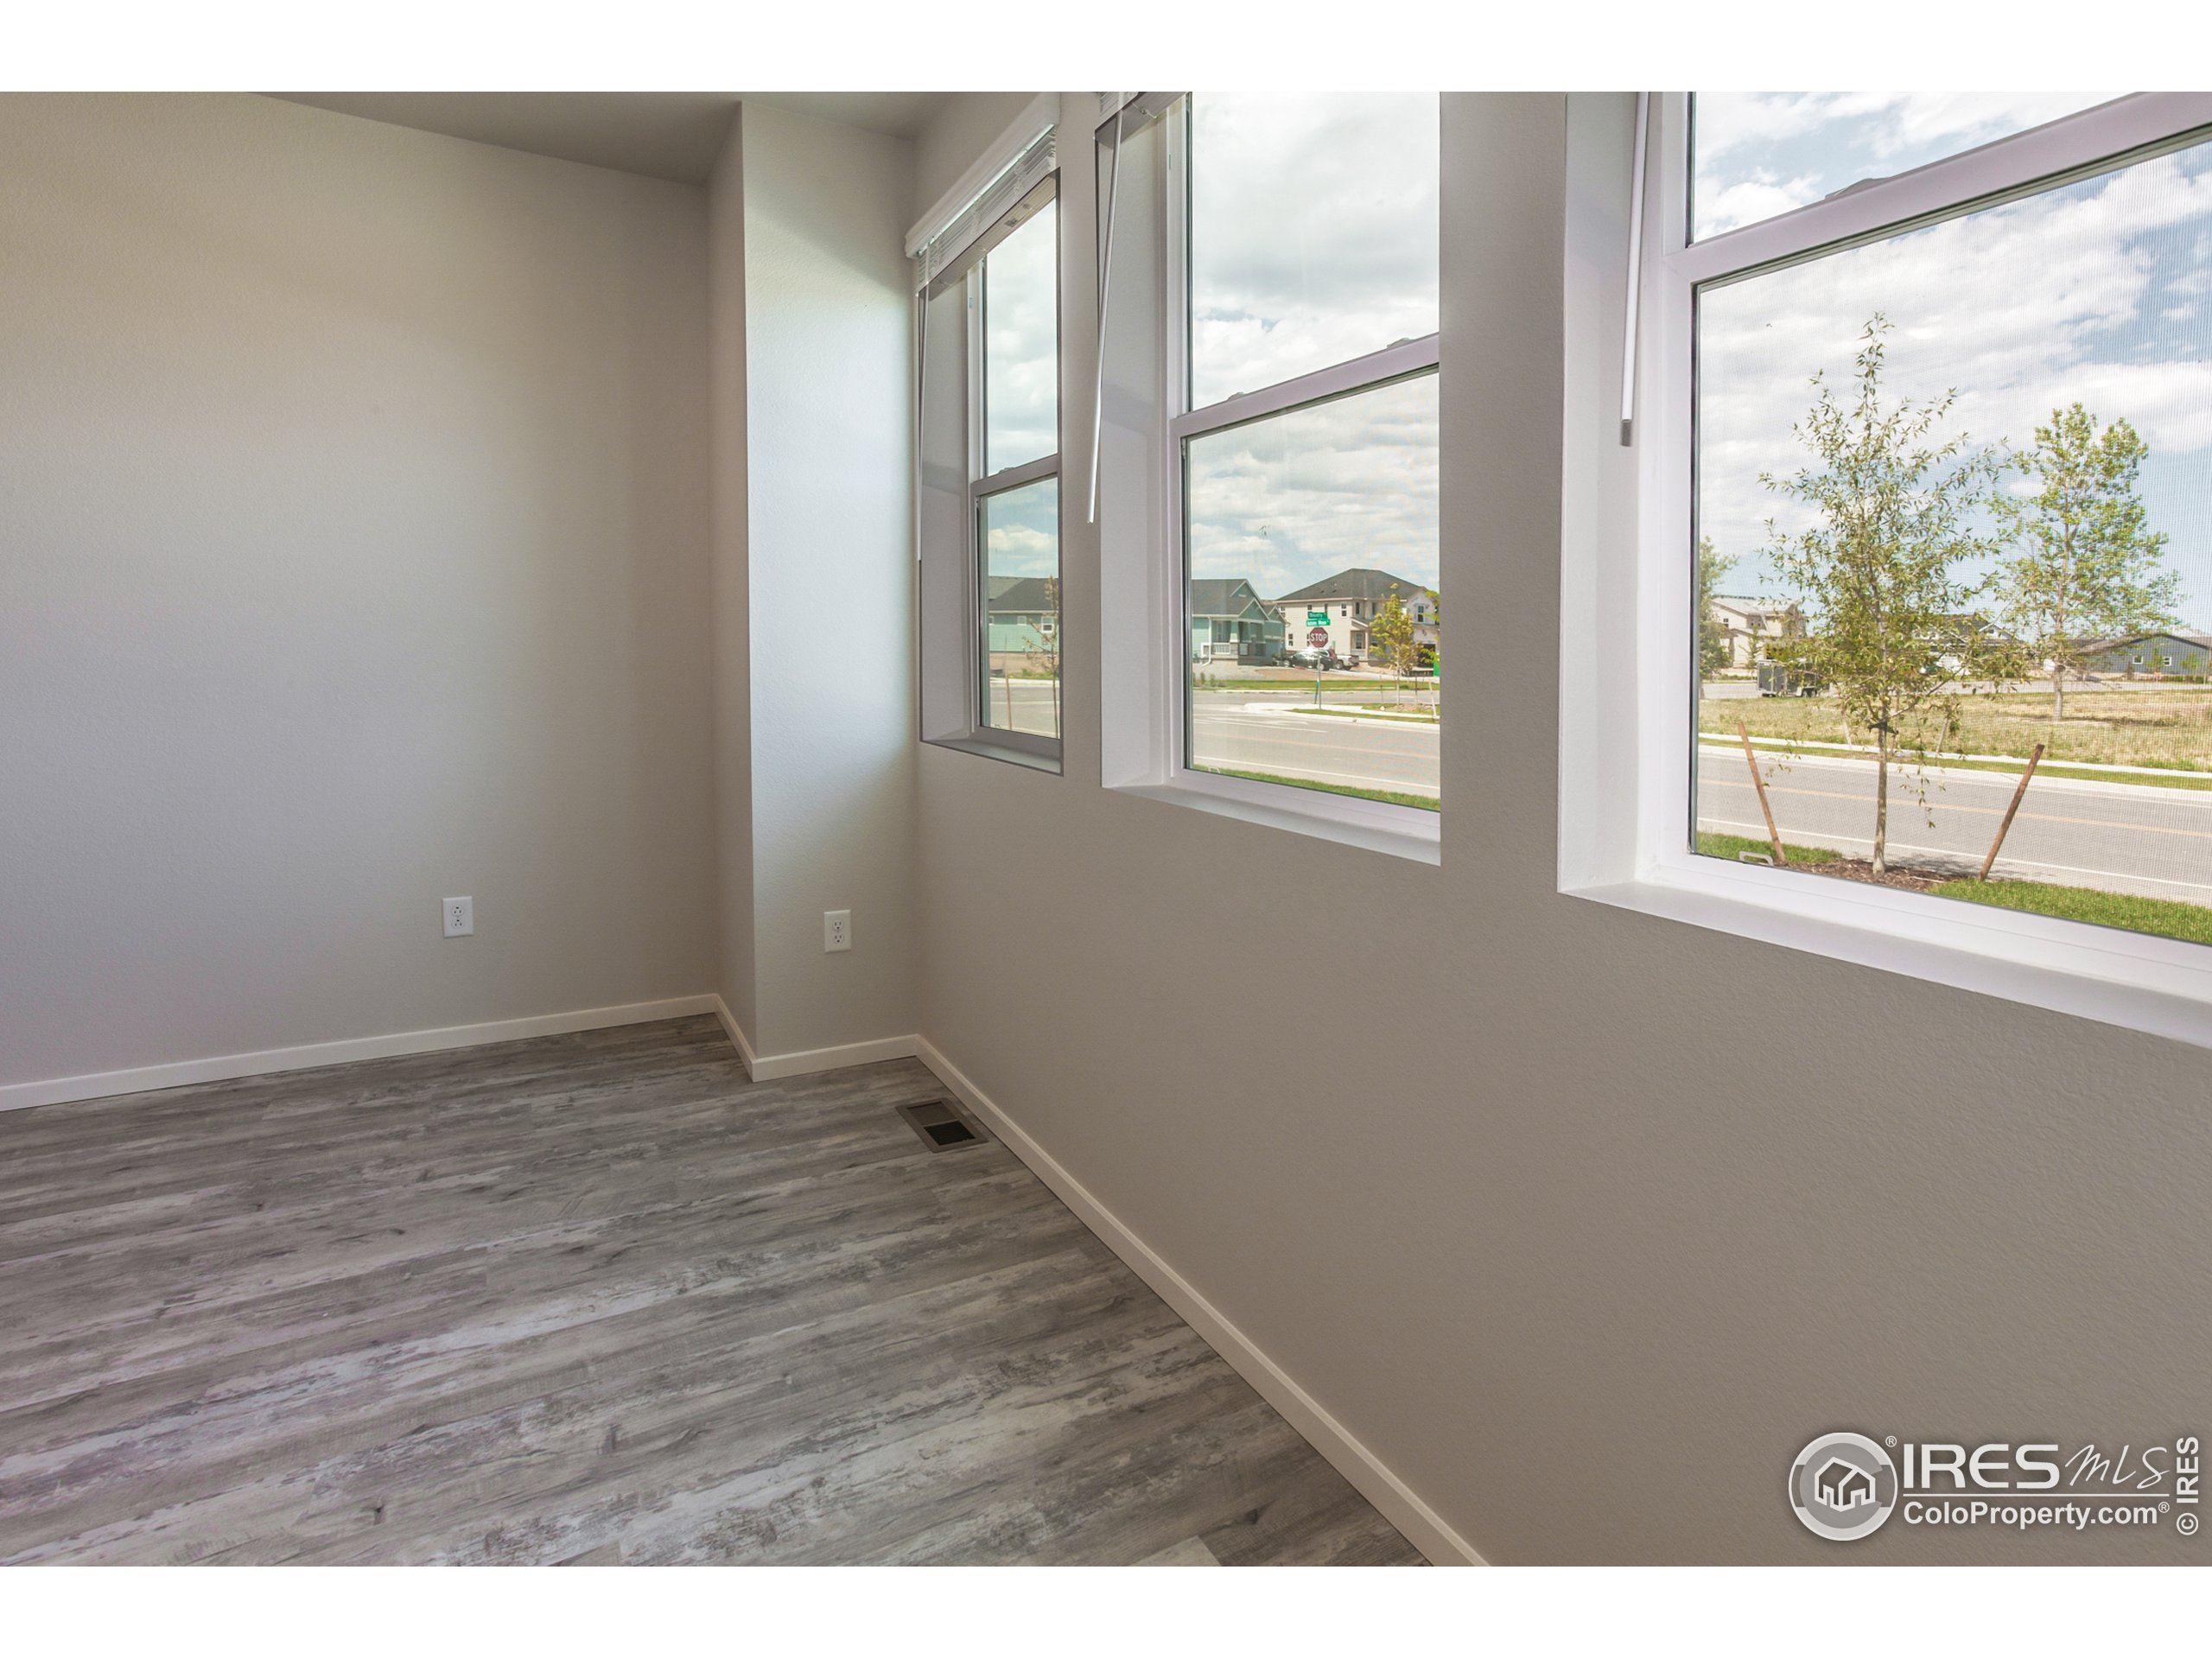 EXAMPLE PHOTOS: WINDOWS IN LIVING ROOM